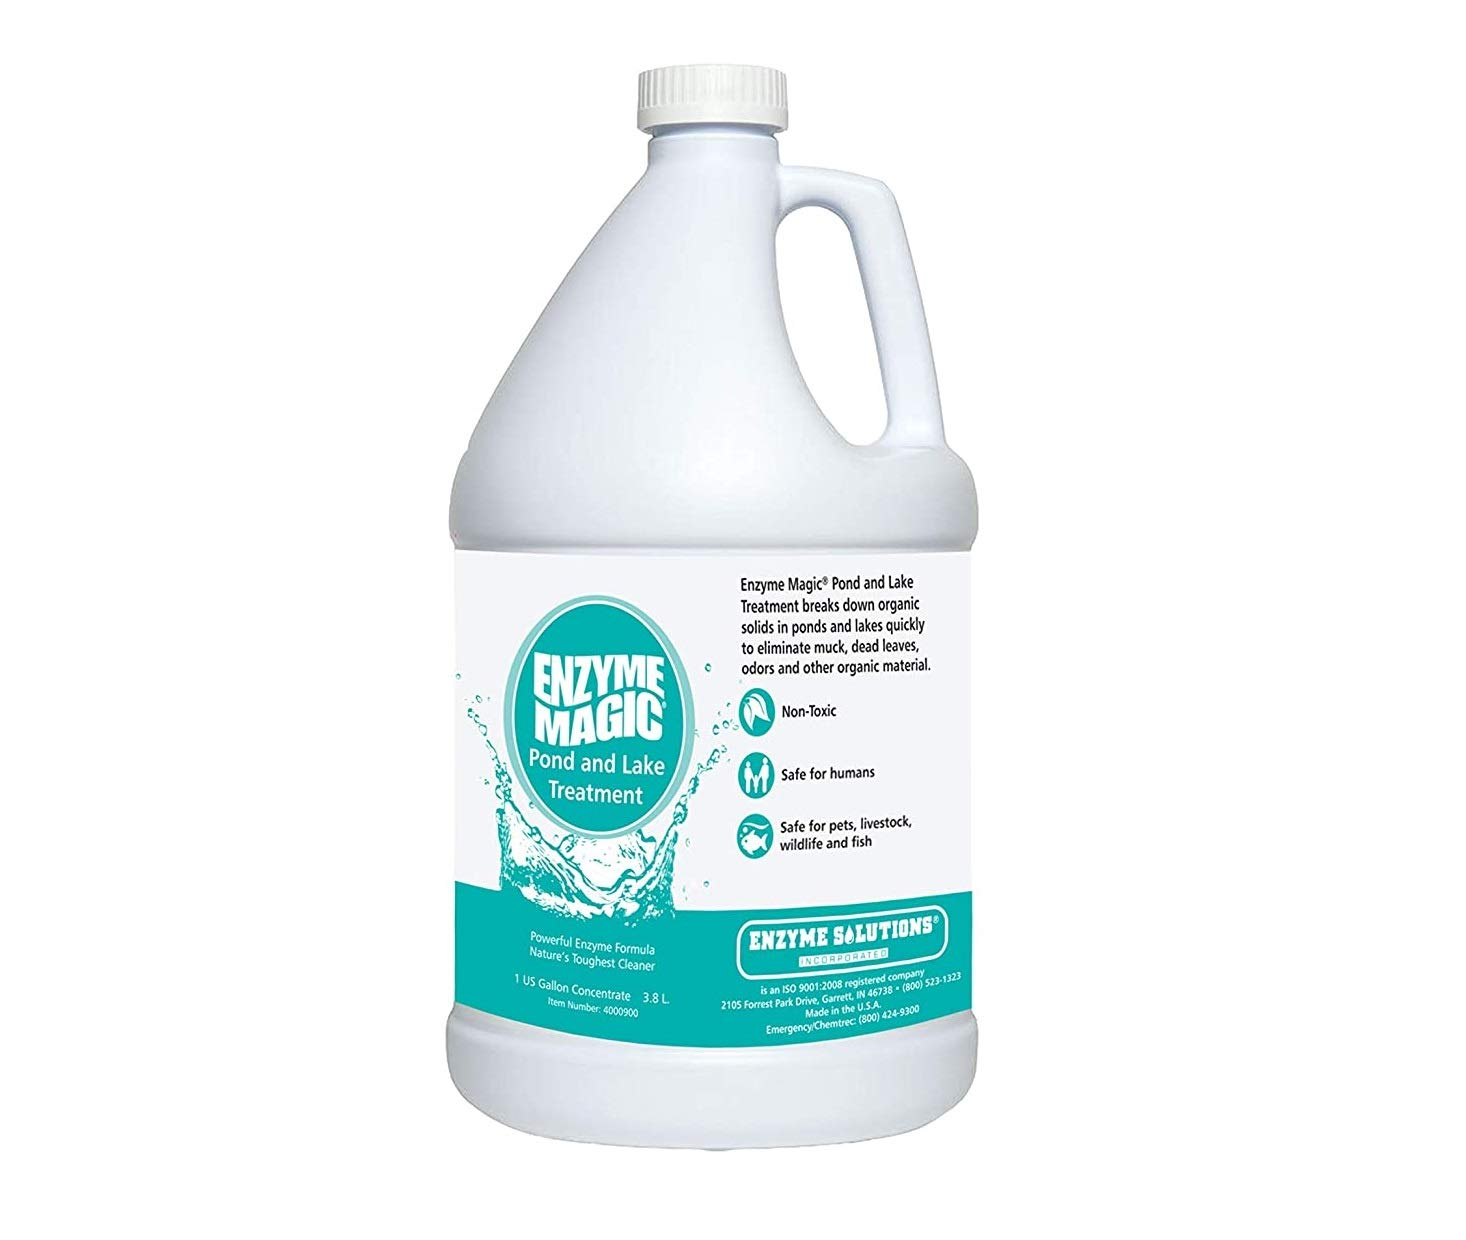 ENZYME MAGIC Pond and Lake Treatment; Enzyme Fomula Breaks Down Organic Solids to Eliminate Muck, Sludge, Fish Waste, Plant Decay, Organic Debris & Odors; Cleans 1 Acre Foot Water (1 Gal Concentrate)